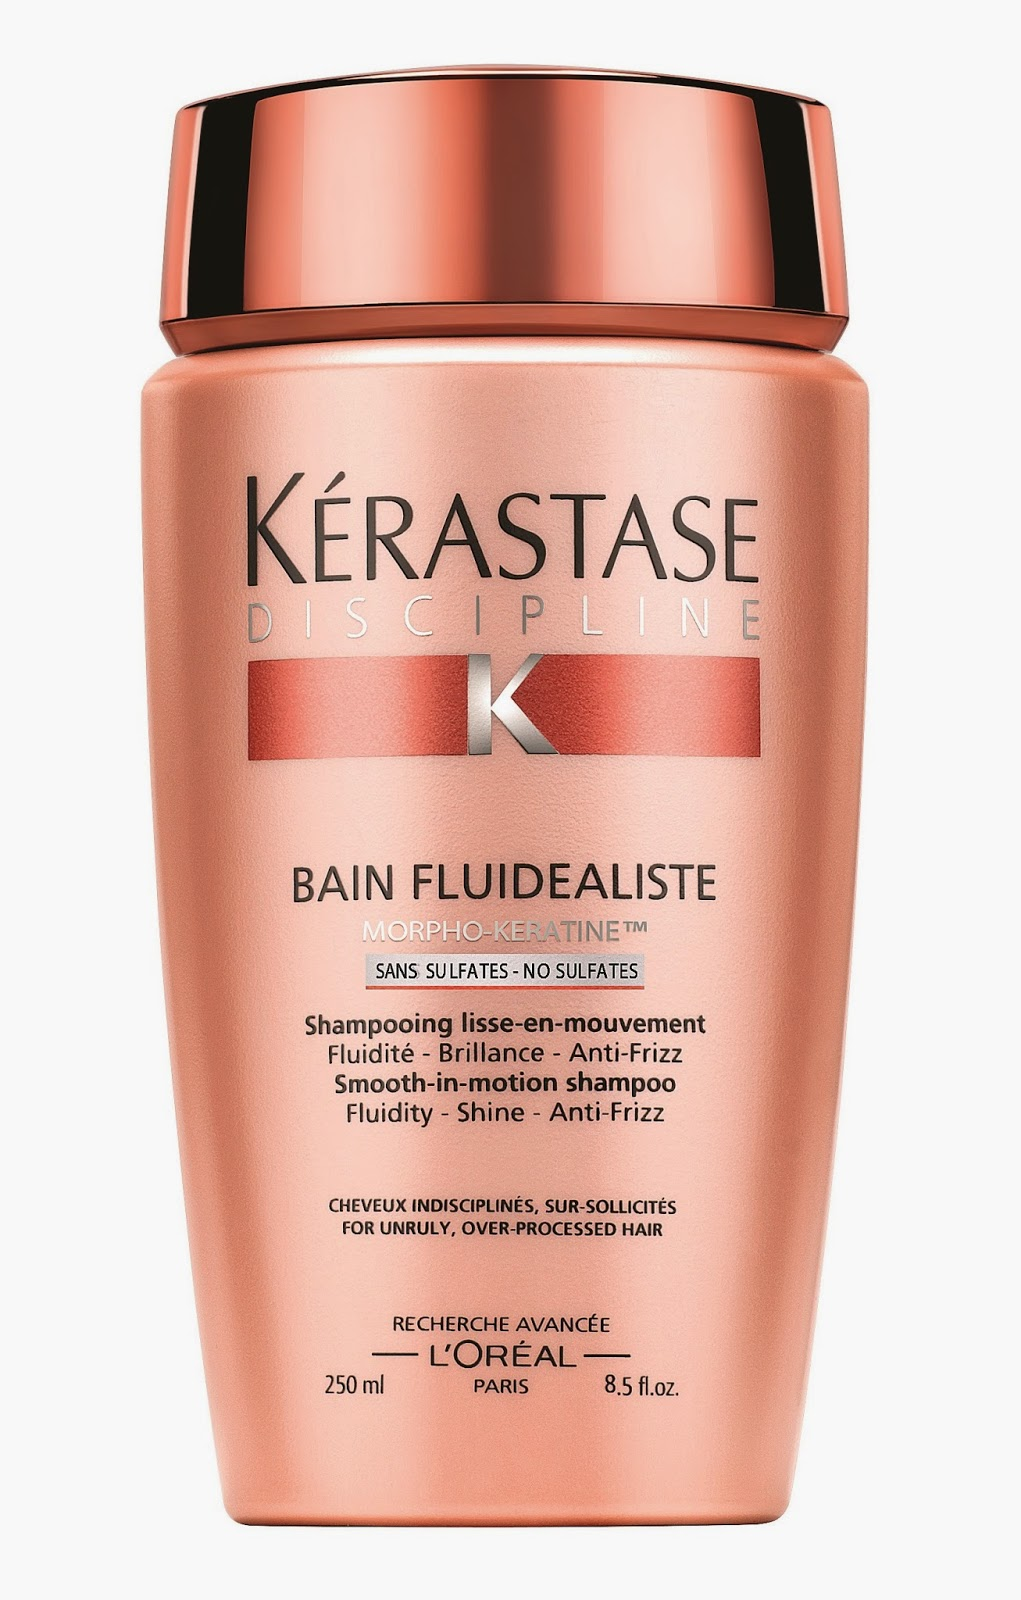 K rastase discipline cuidado del cabello bellocapello for S k bain 2015